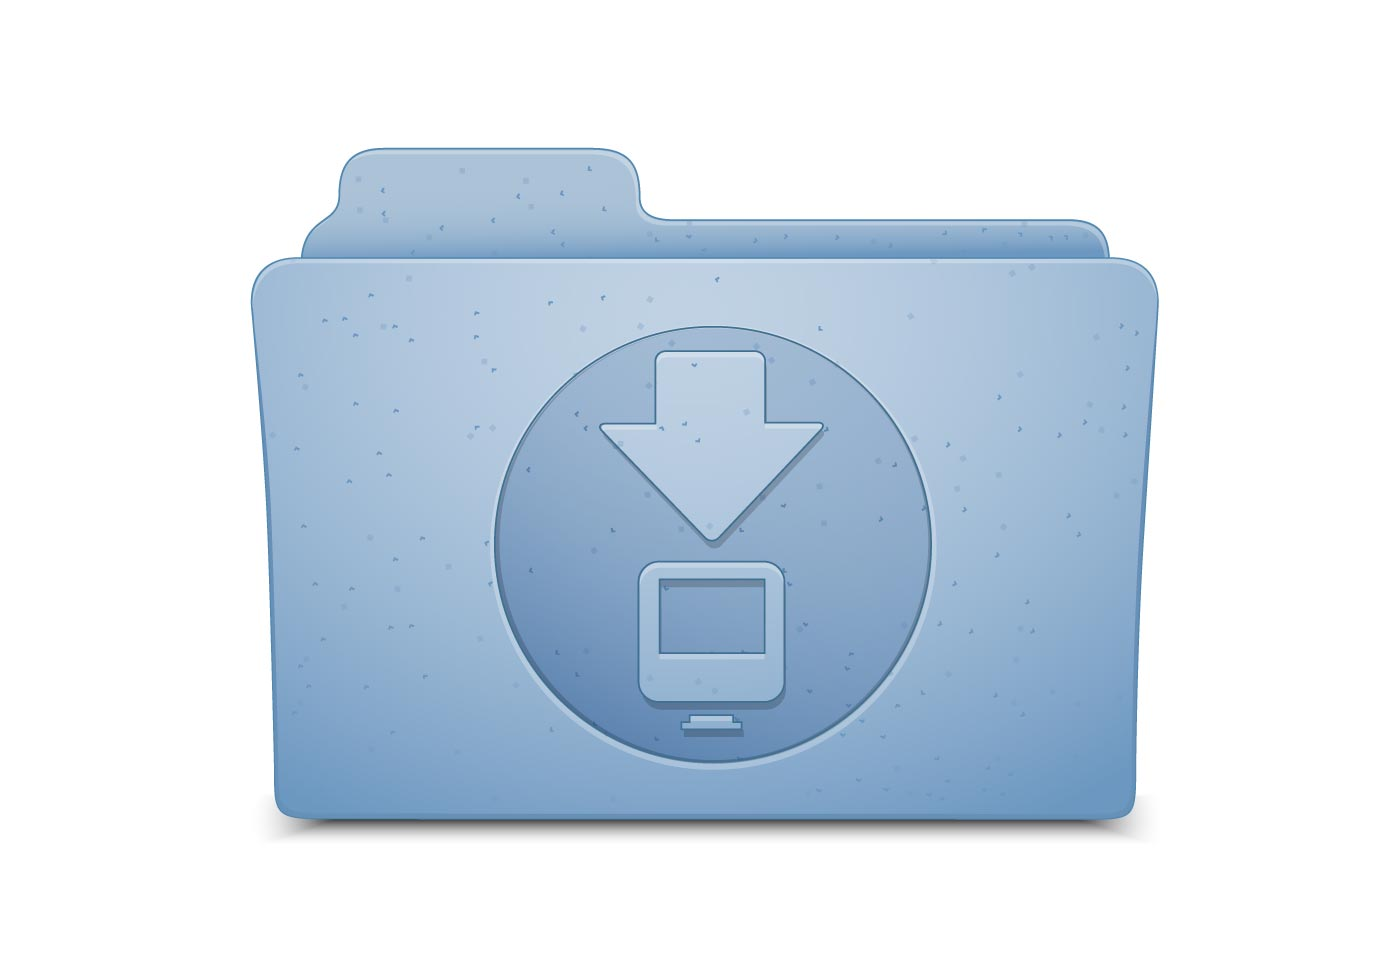 osx-download-folder-vector.jpg